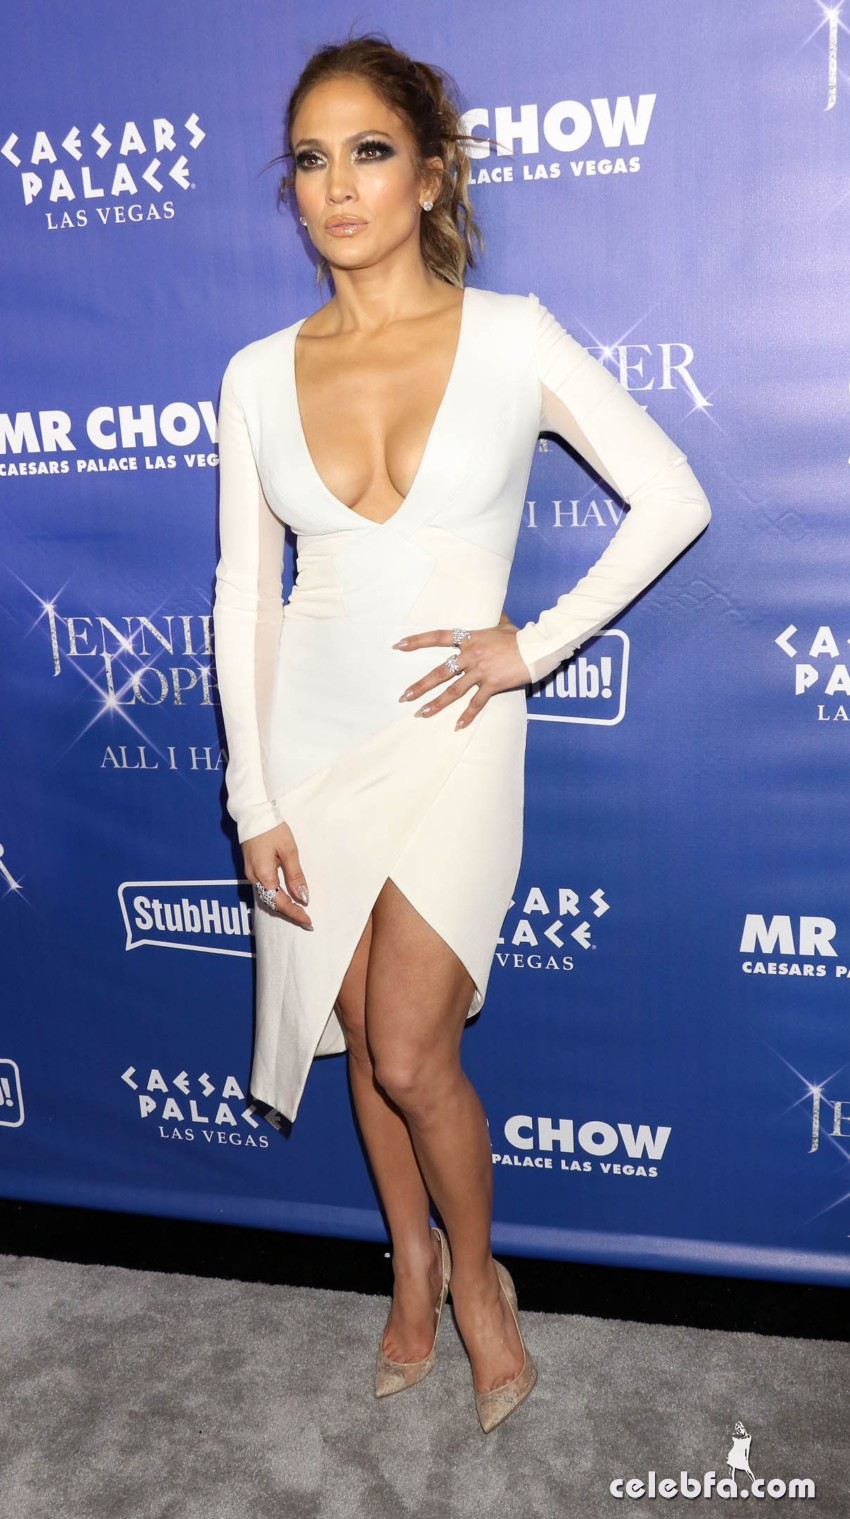 'JENNIFER LOPEZ: ALL I HAVE' After Party and Grand Opening of Mr. Chow inside Caesars Palace in Las Vegas Featuring: Jennifer Lopez Where: Las Vegas, Nevada, United States When: 20 Jan 2016 Credit: DJDM/WENN.com